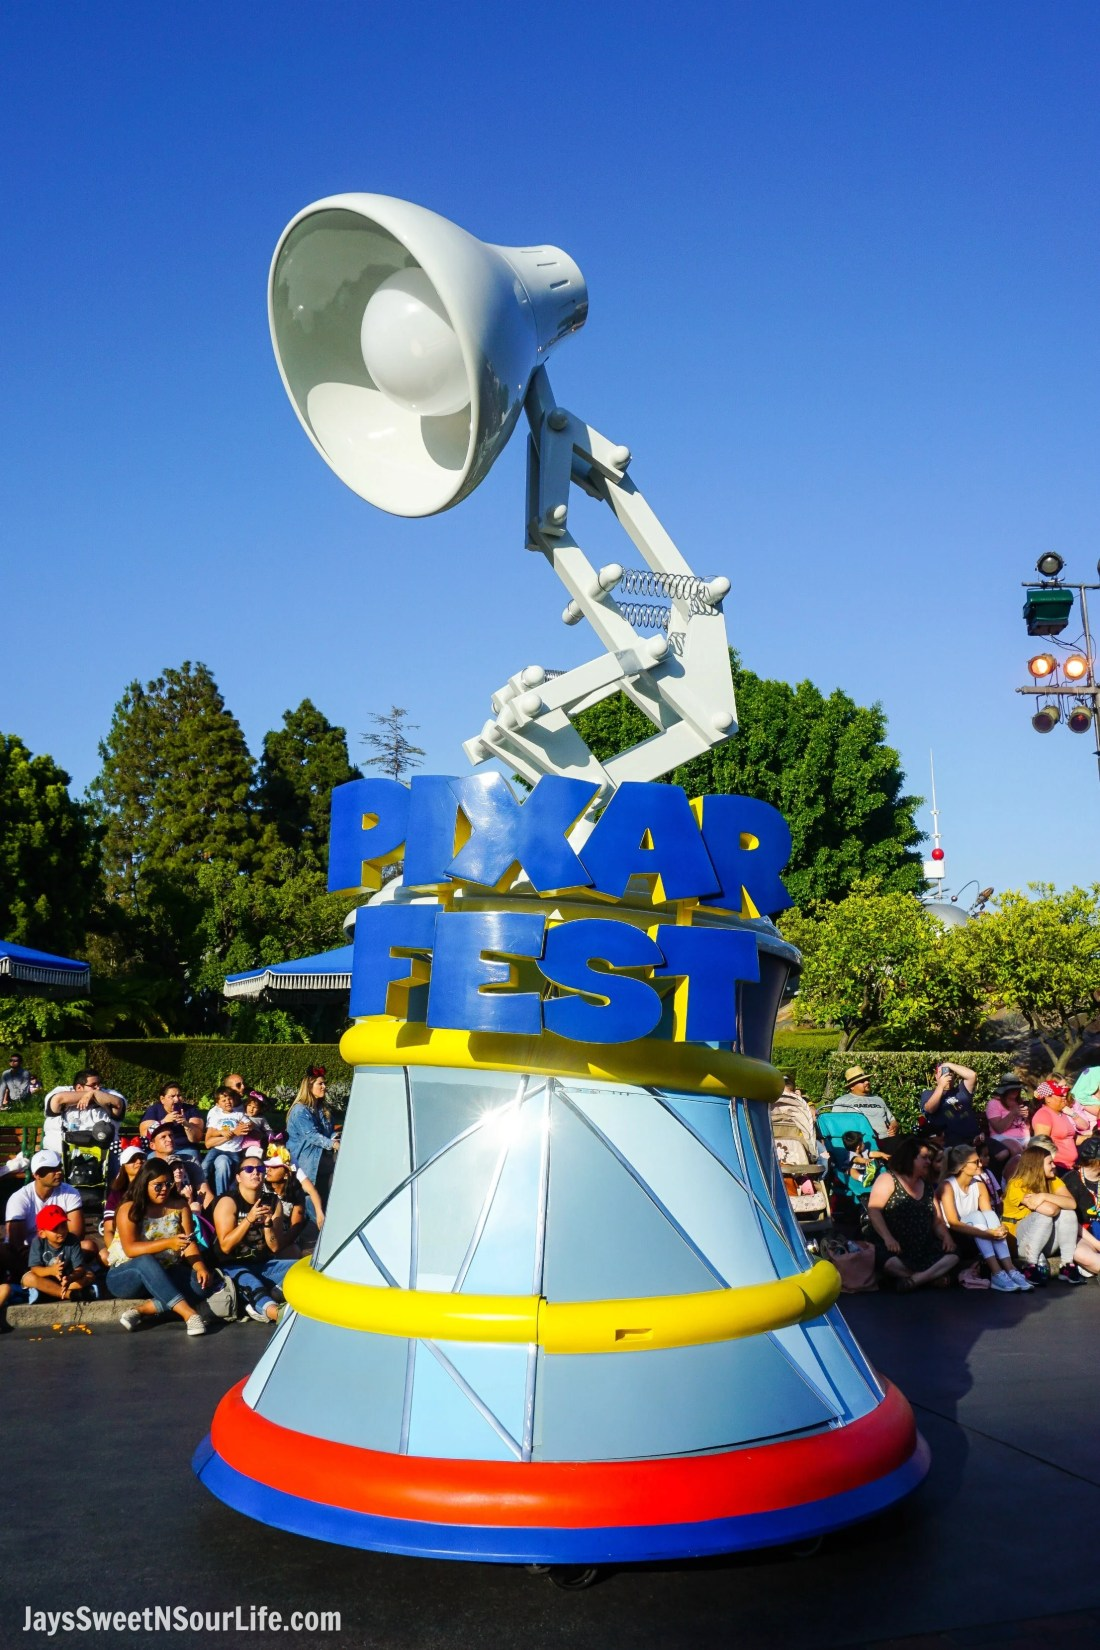 Pixar Play Parade at Disneyland Pixar Fest Float. Pixar Fest at Disneyland runs from April 13 through September 3rd.